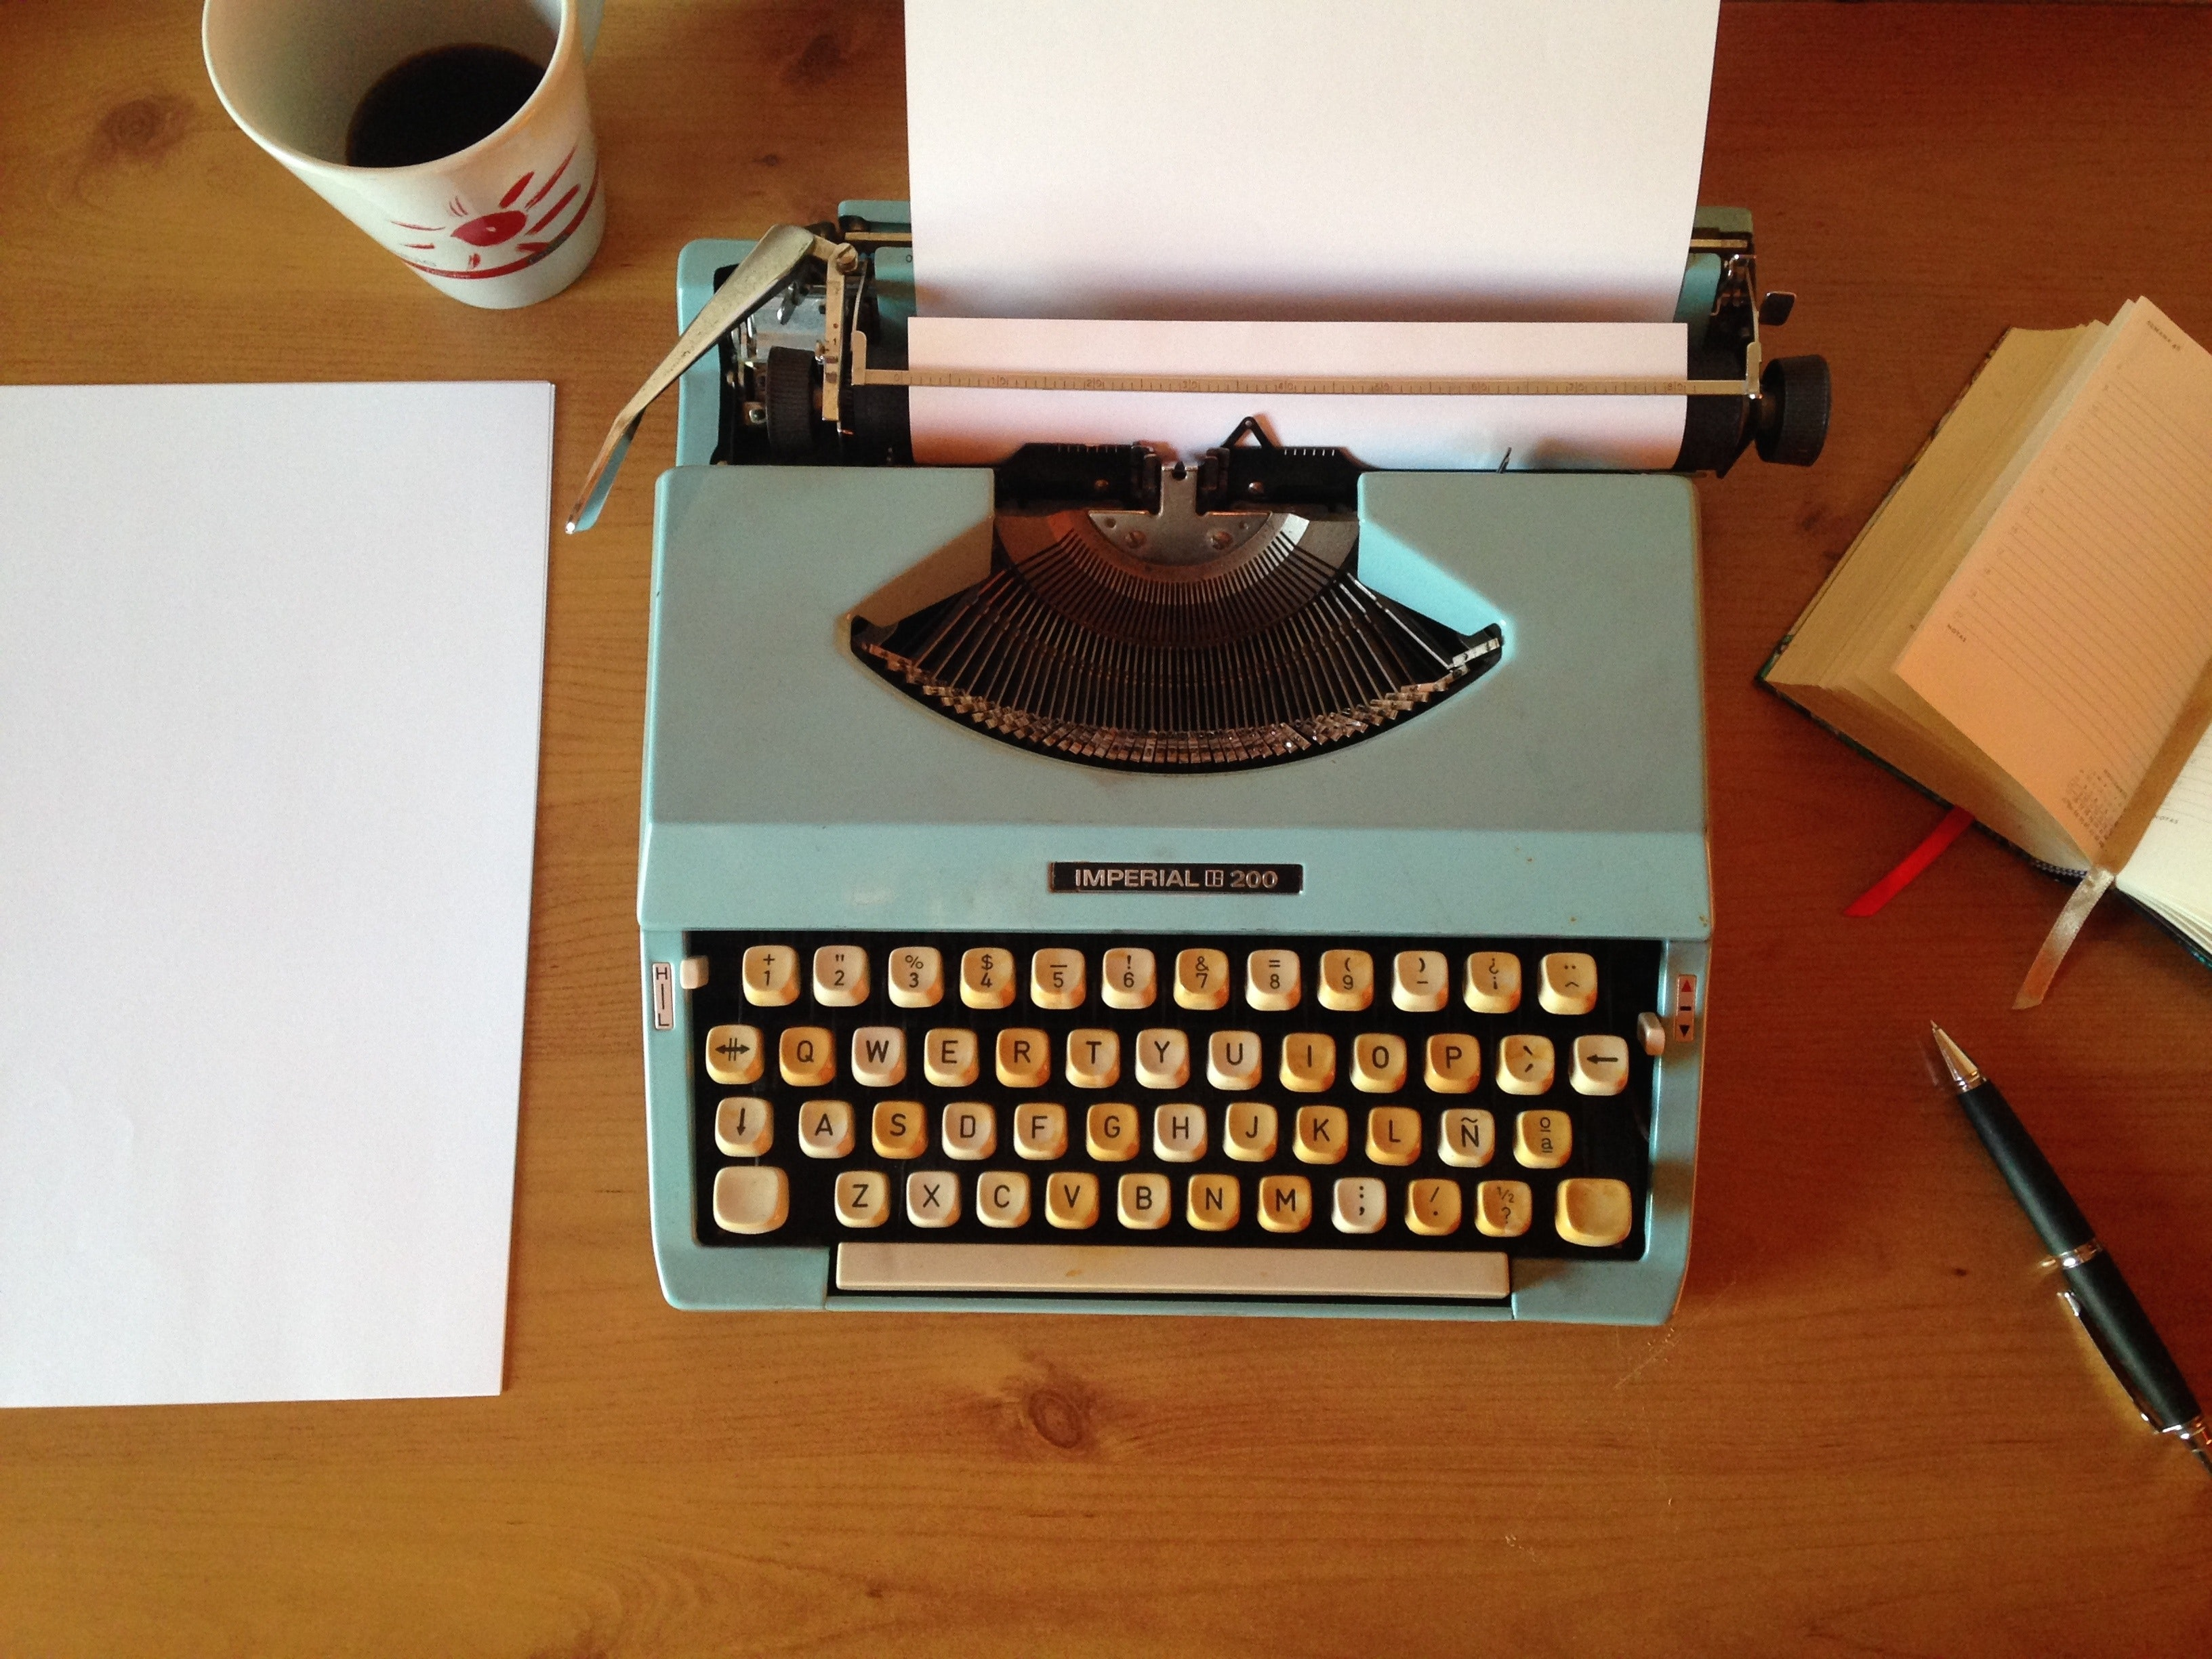 A picture of a neat desk with a typewriter.